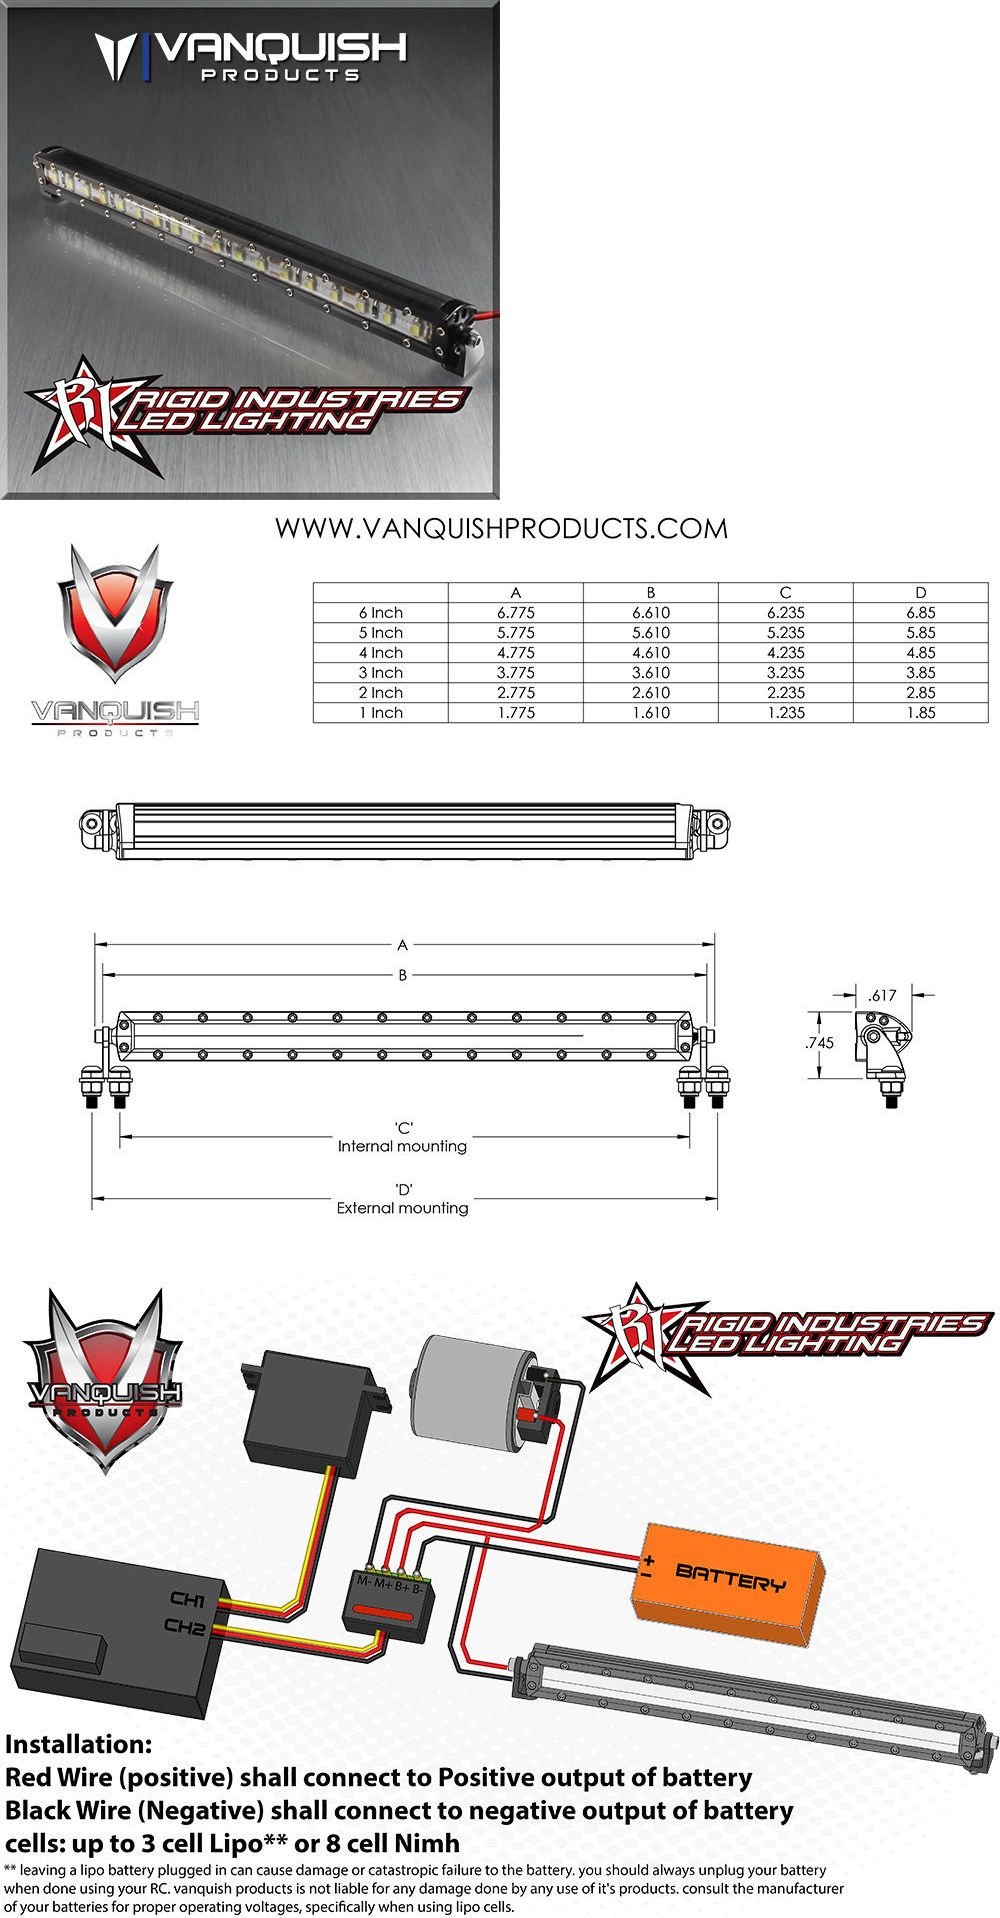 lighting and lamps 182177 vanquish rigid industries 6in led light bar black 1 10 scale axial hpi vps06751 buy it now only 58 99 on ebay lighting  [ 1000 x 1918 Pixel ]